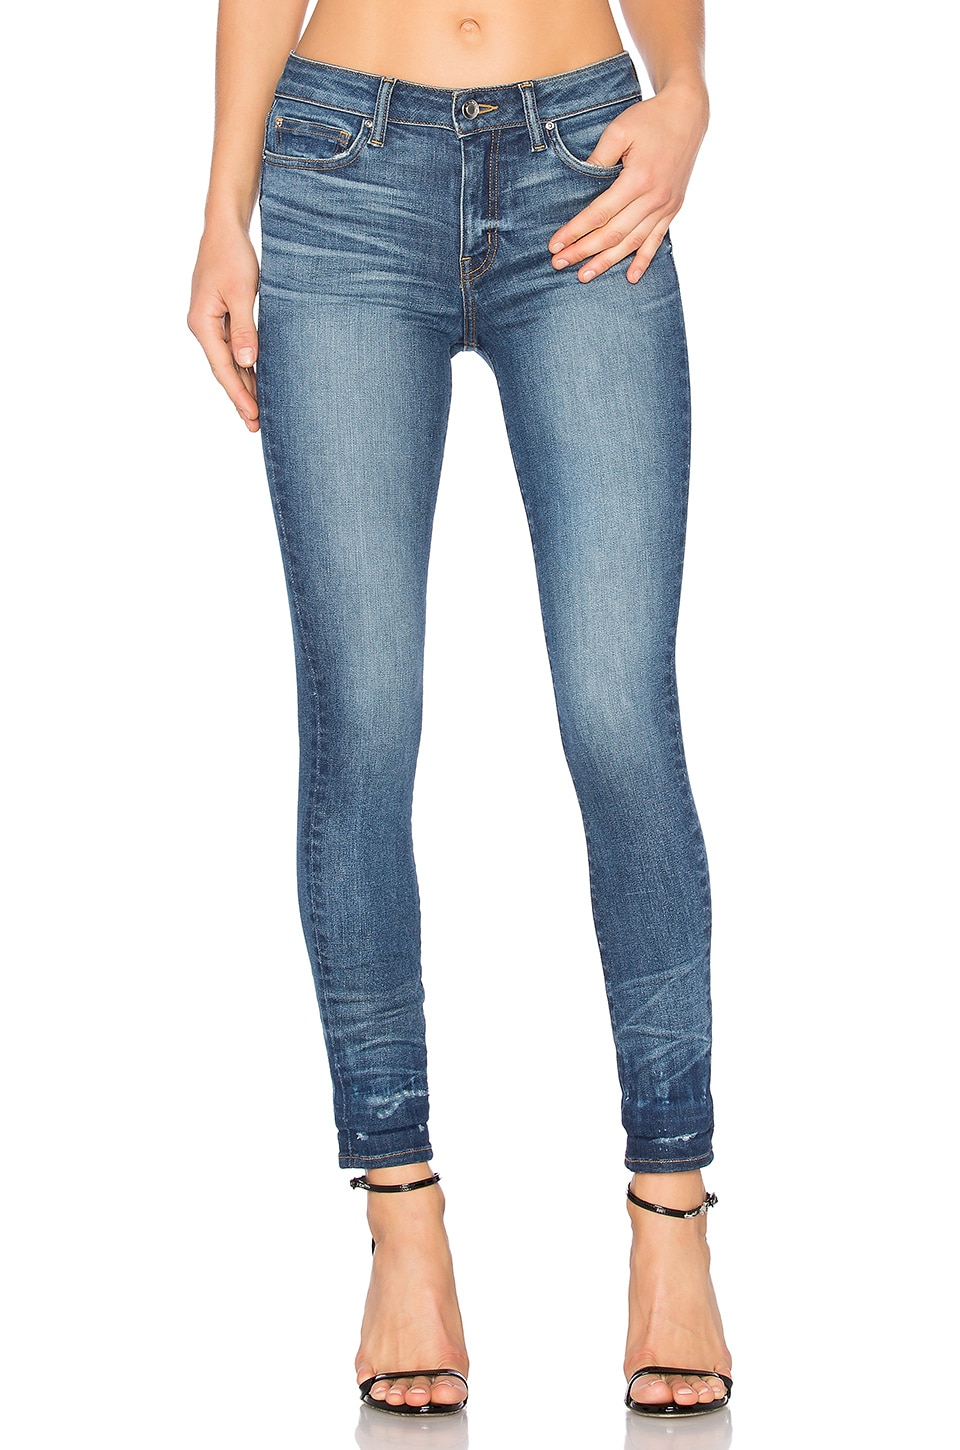 Nikky Jeans by Iro . Jeans